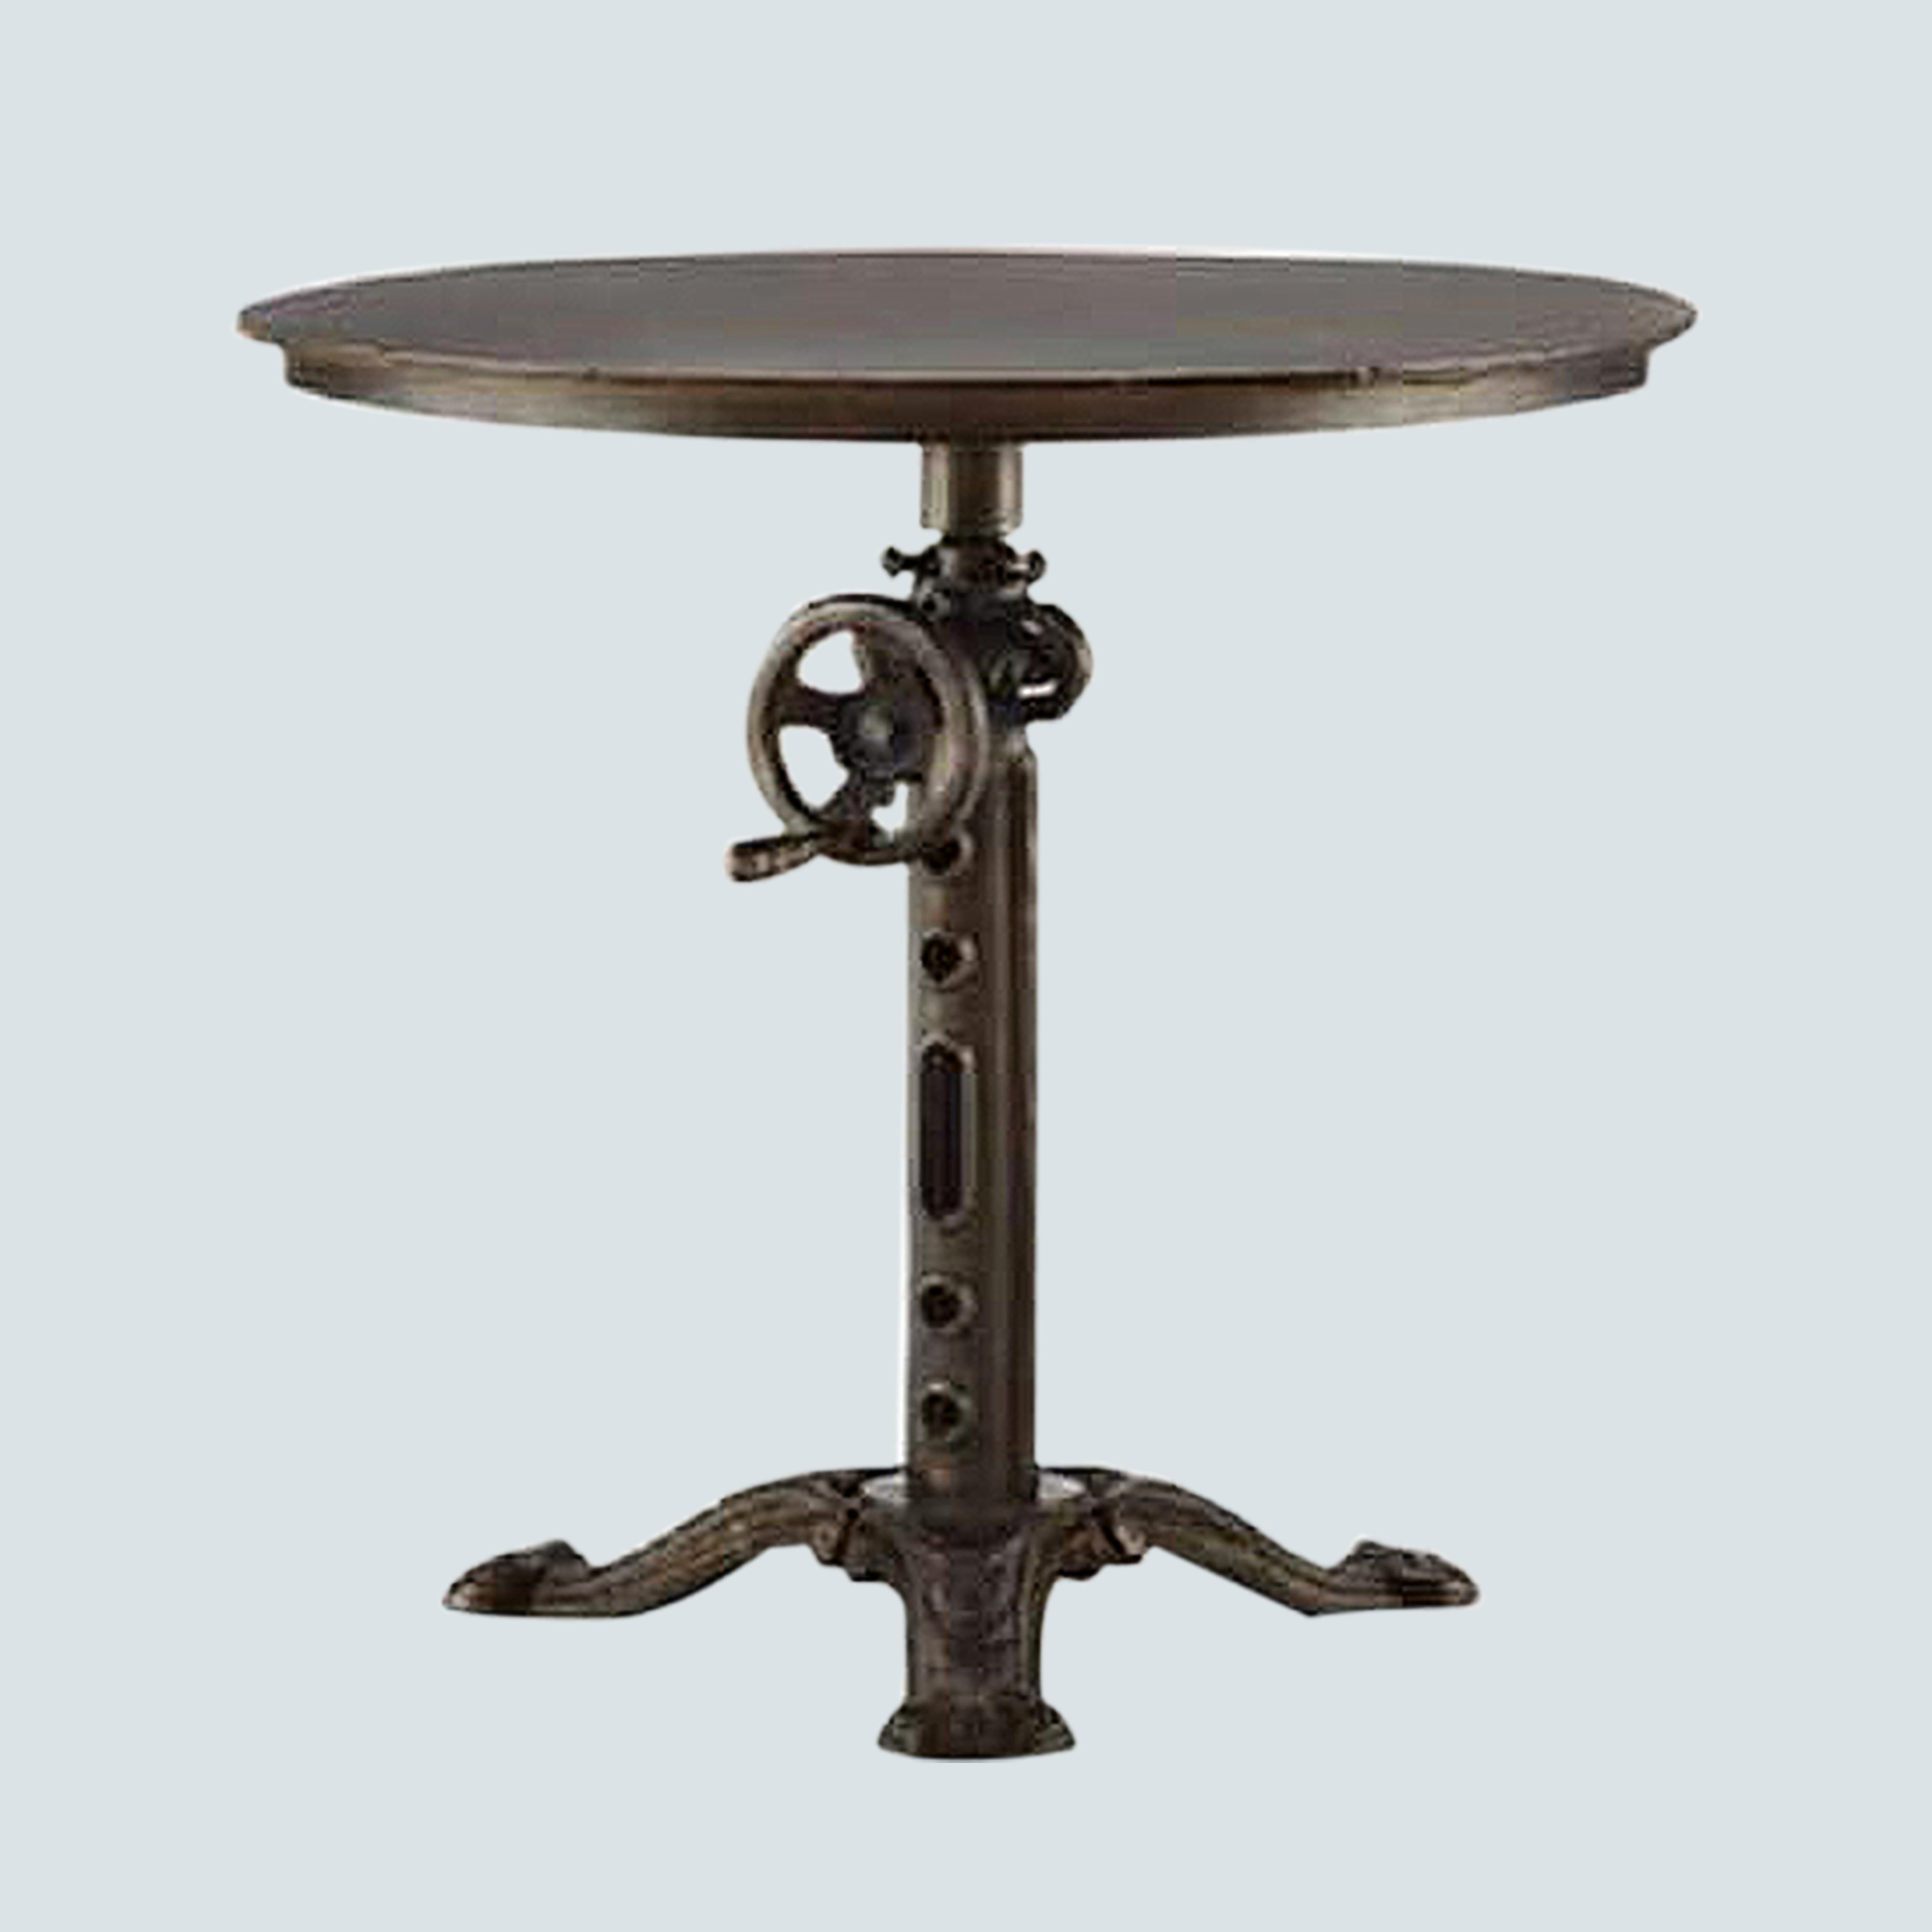 Industrial reclaimed solid round wood , metal frame coffee table, Accent Cocktail Table with swivel and adjustable height